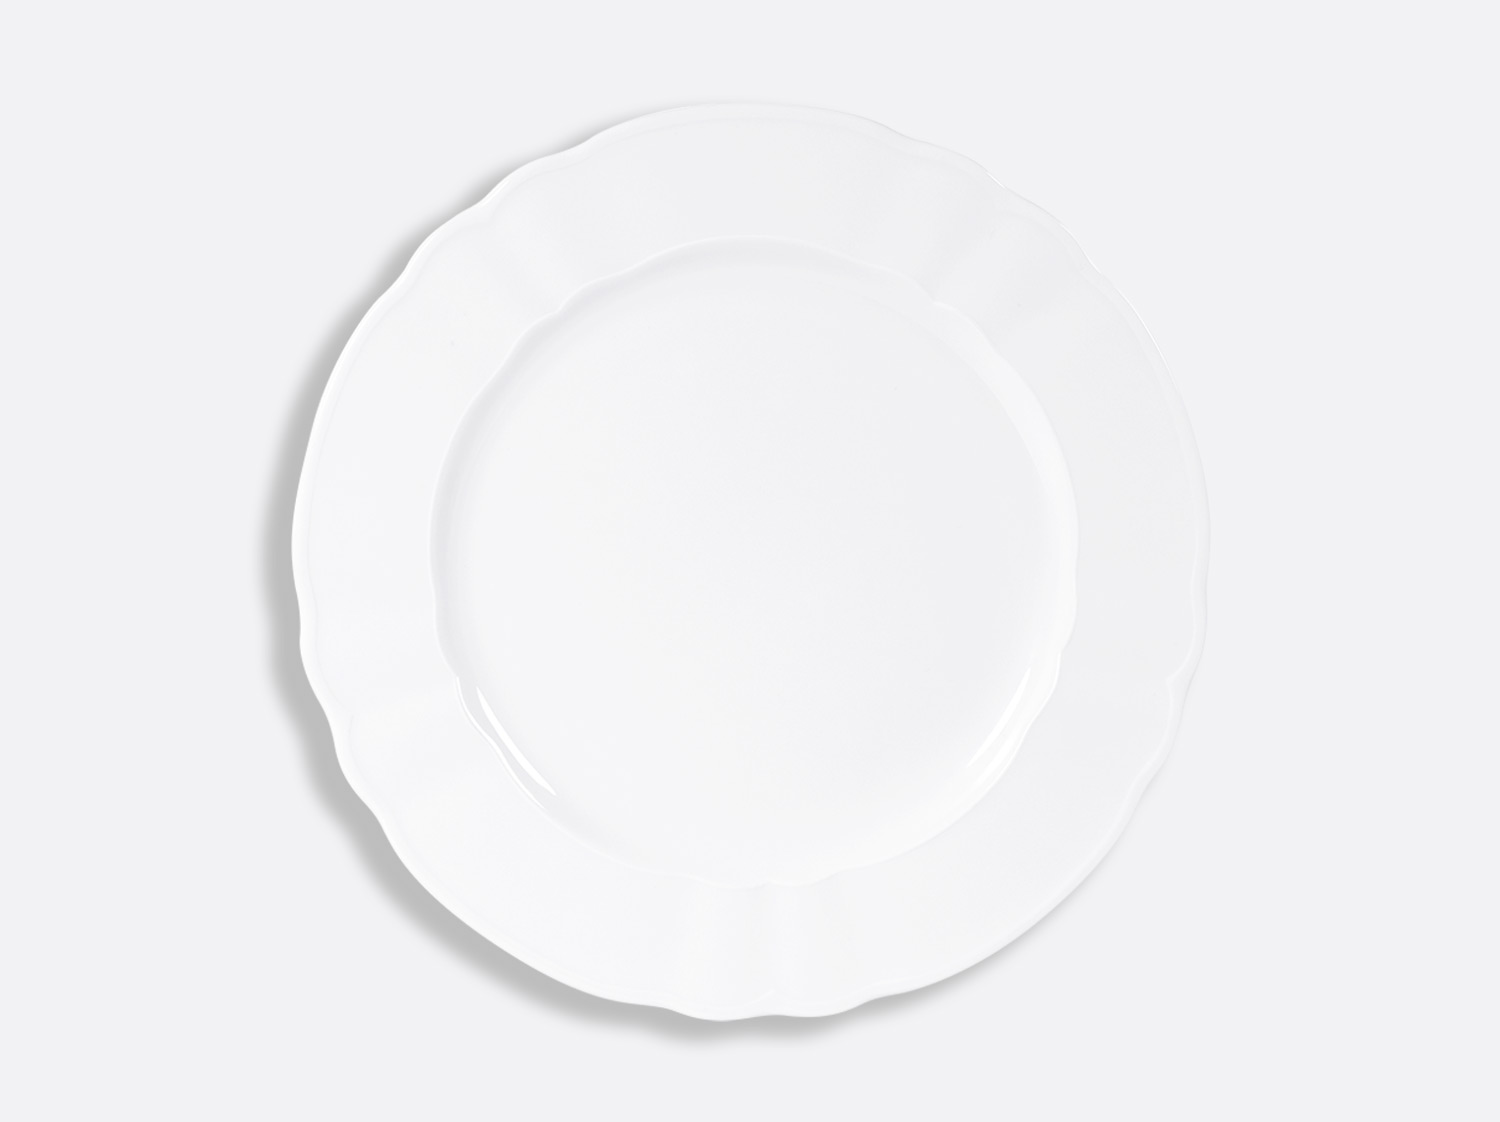 China Plate 29.5 cm of the collection L.15 blanc | Bernardaud